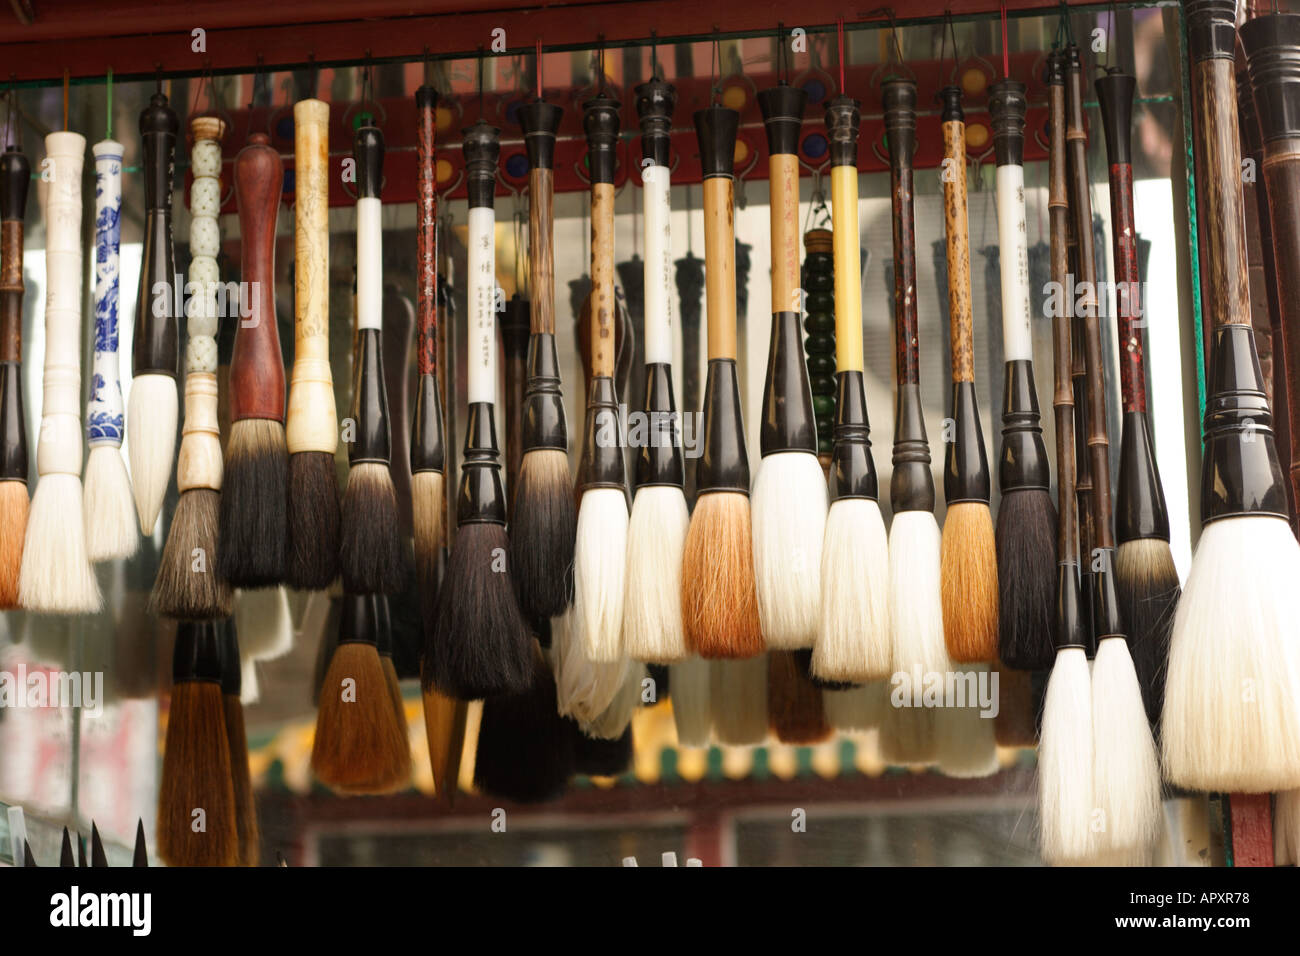 Calligraphy Brushes for sale Liulichang Street Market Beijing China - Stock  Image a73c648c0148